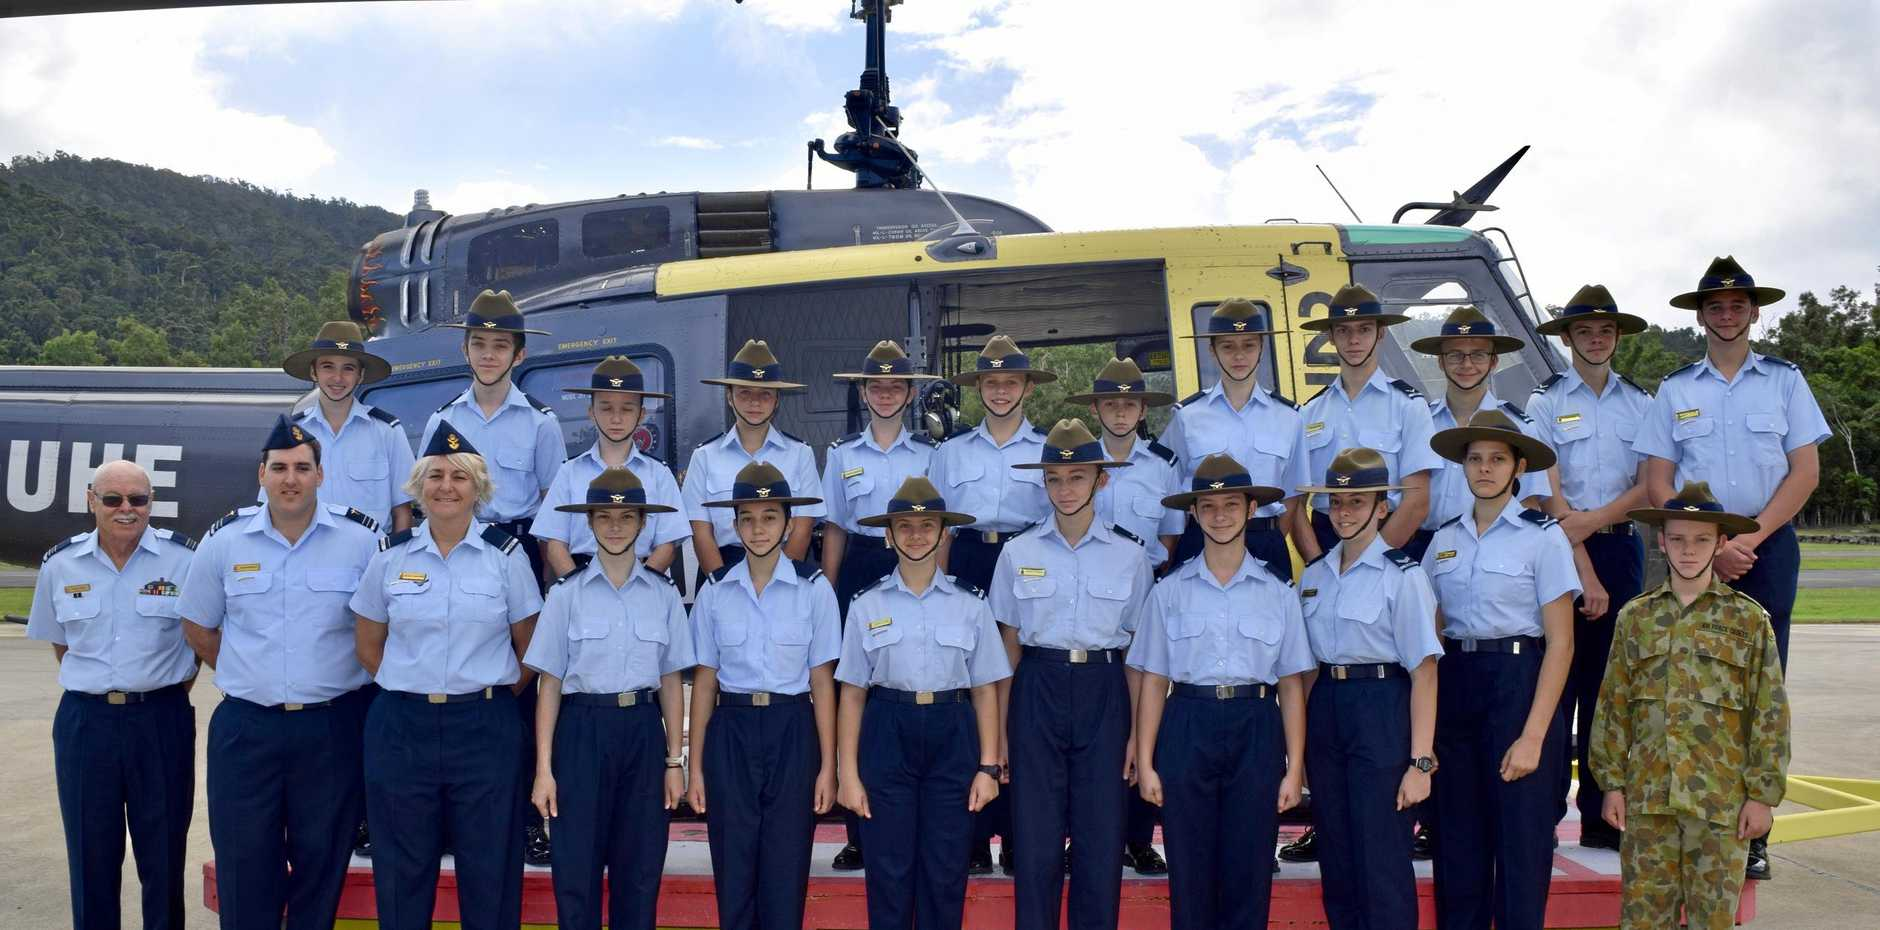 DROPPED IN: Helibiz Airlie Beach took the Australian Air force Cadets 110 Squadron on a flight in the Eagle One Helicopter.